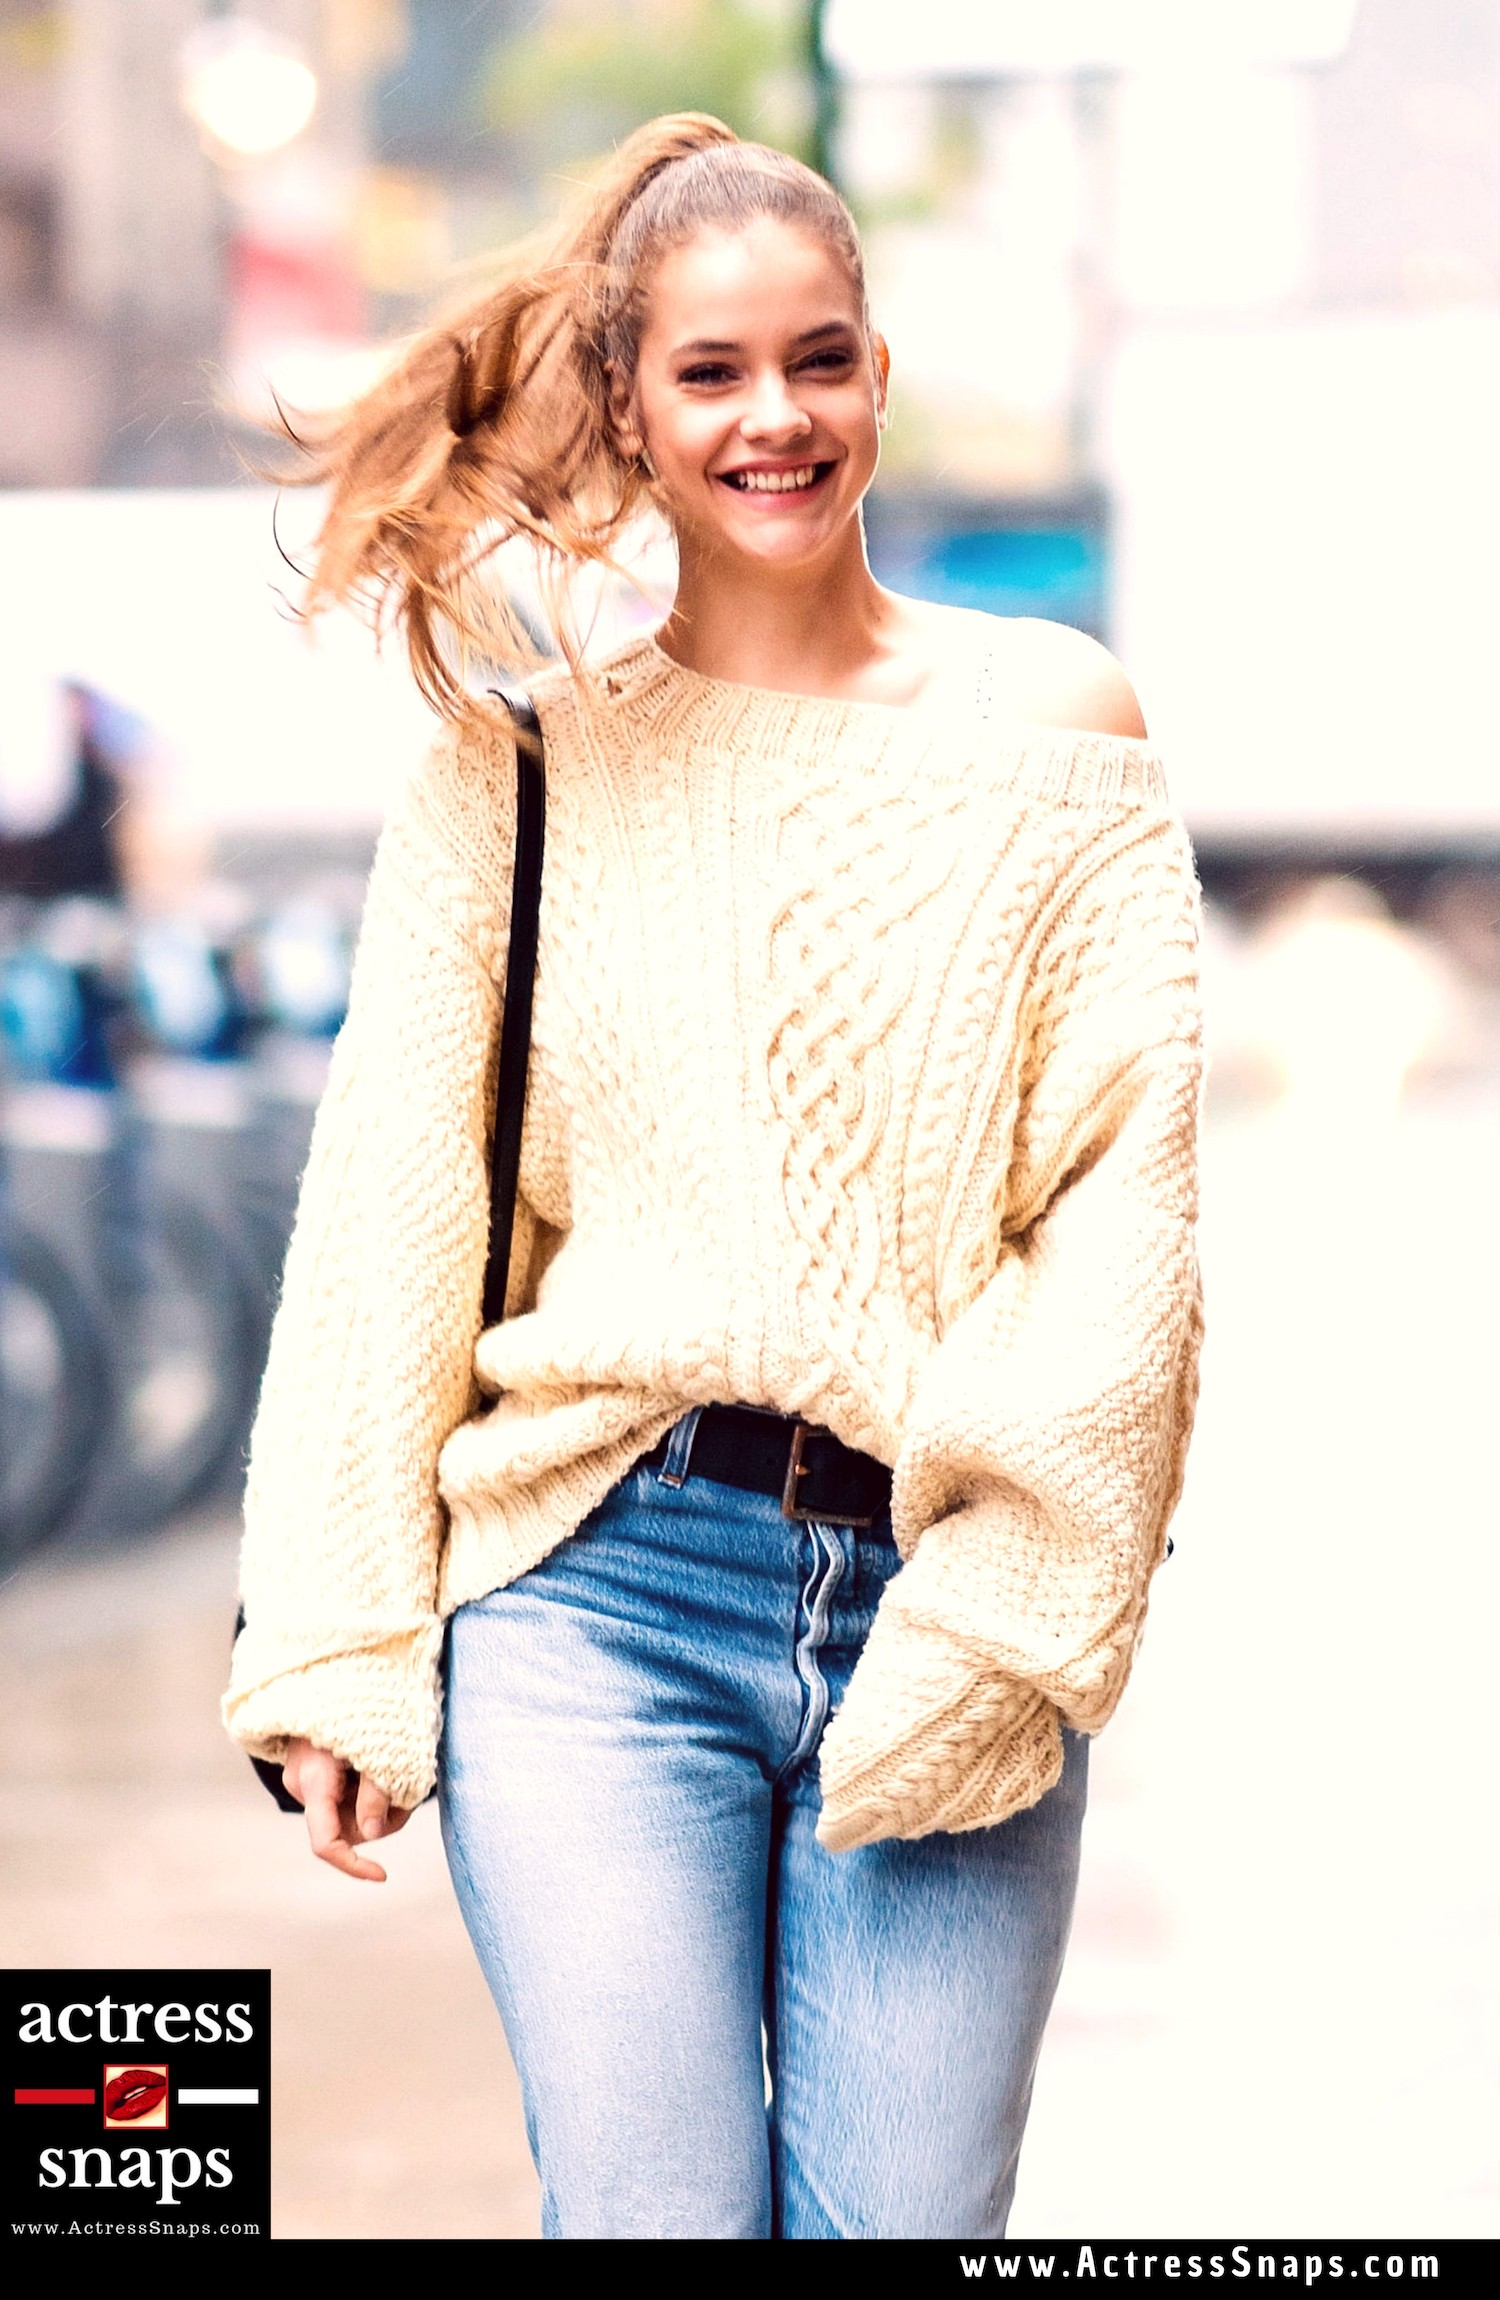 Super Model Barbara Palvin looking cheerful weraing a cream sweater